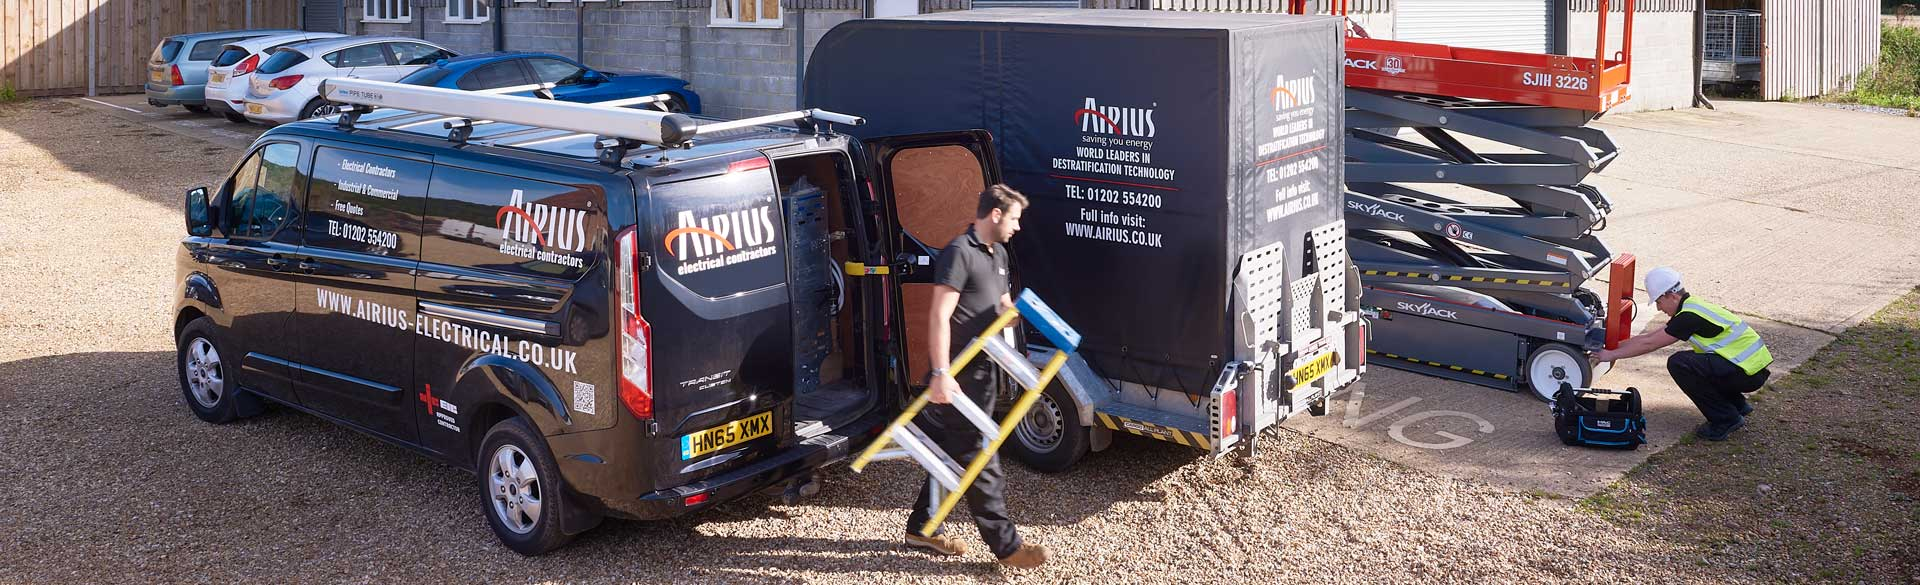 Range-Of-Airius-Electrical-Contractor-Services